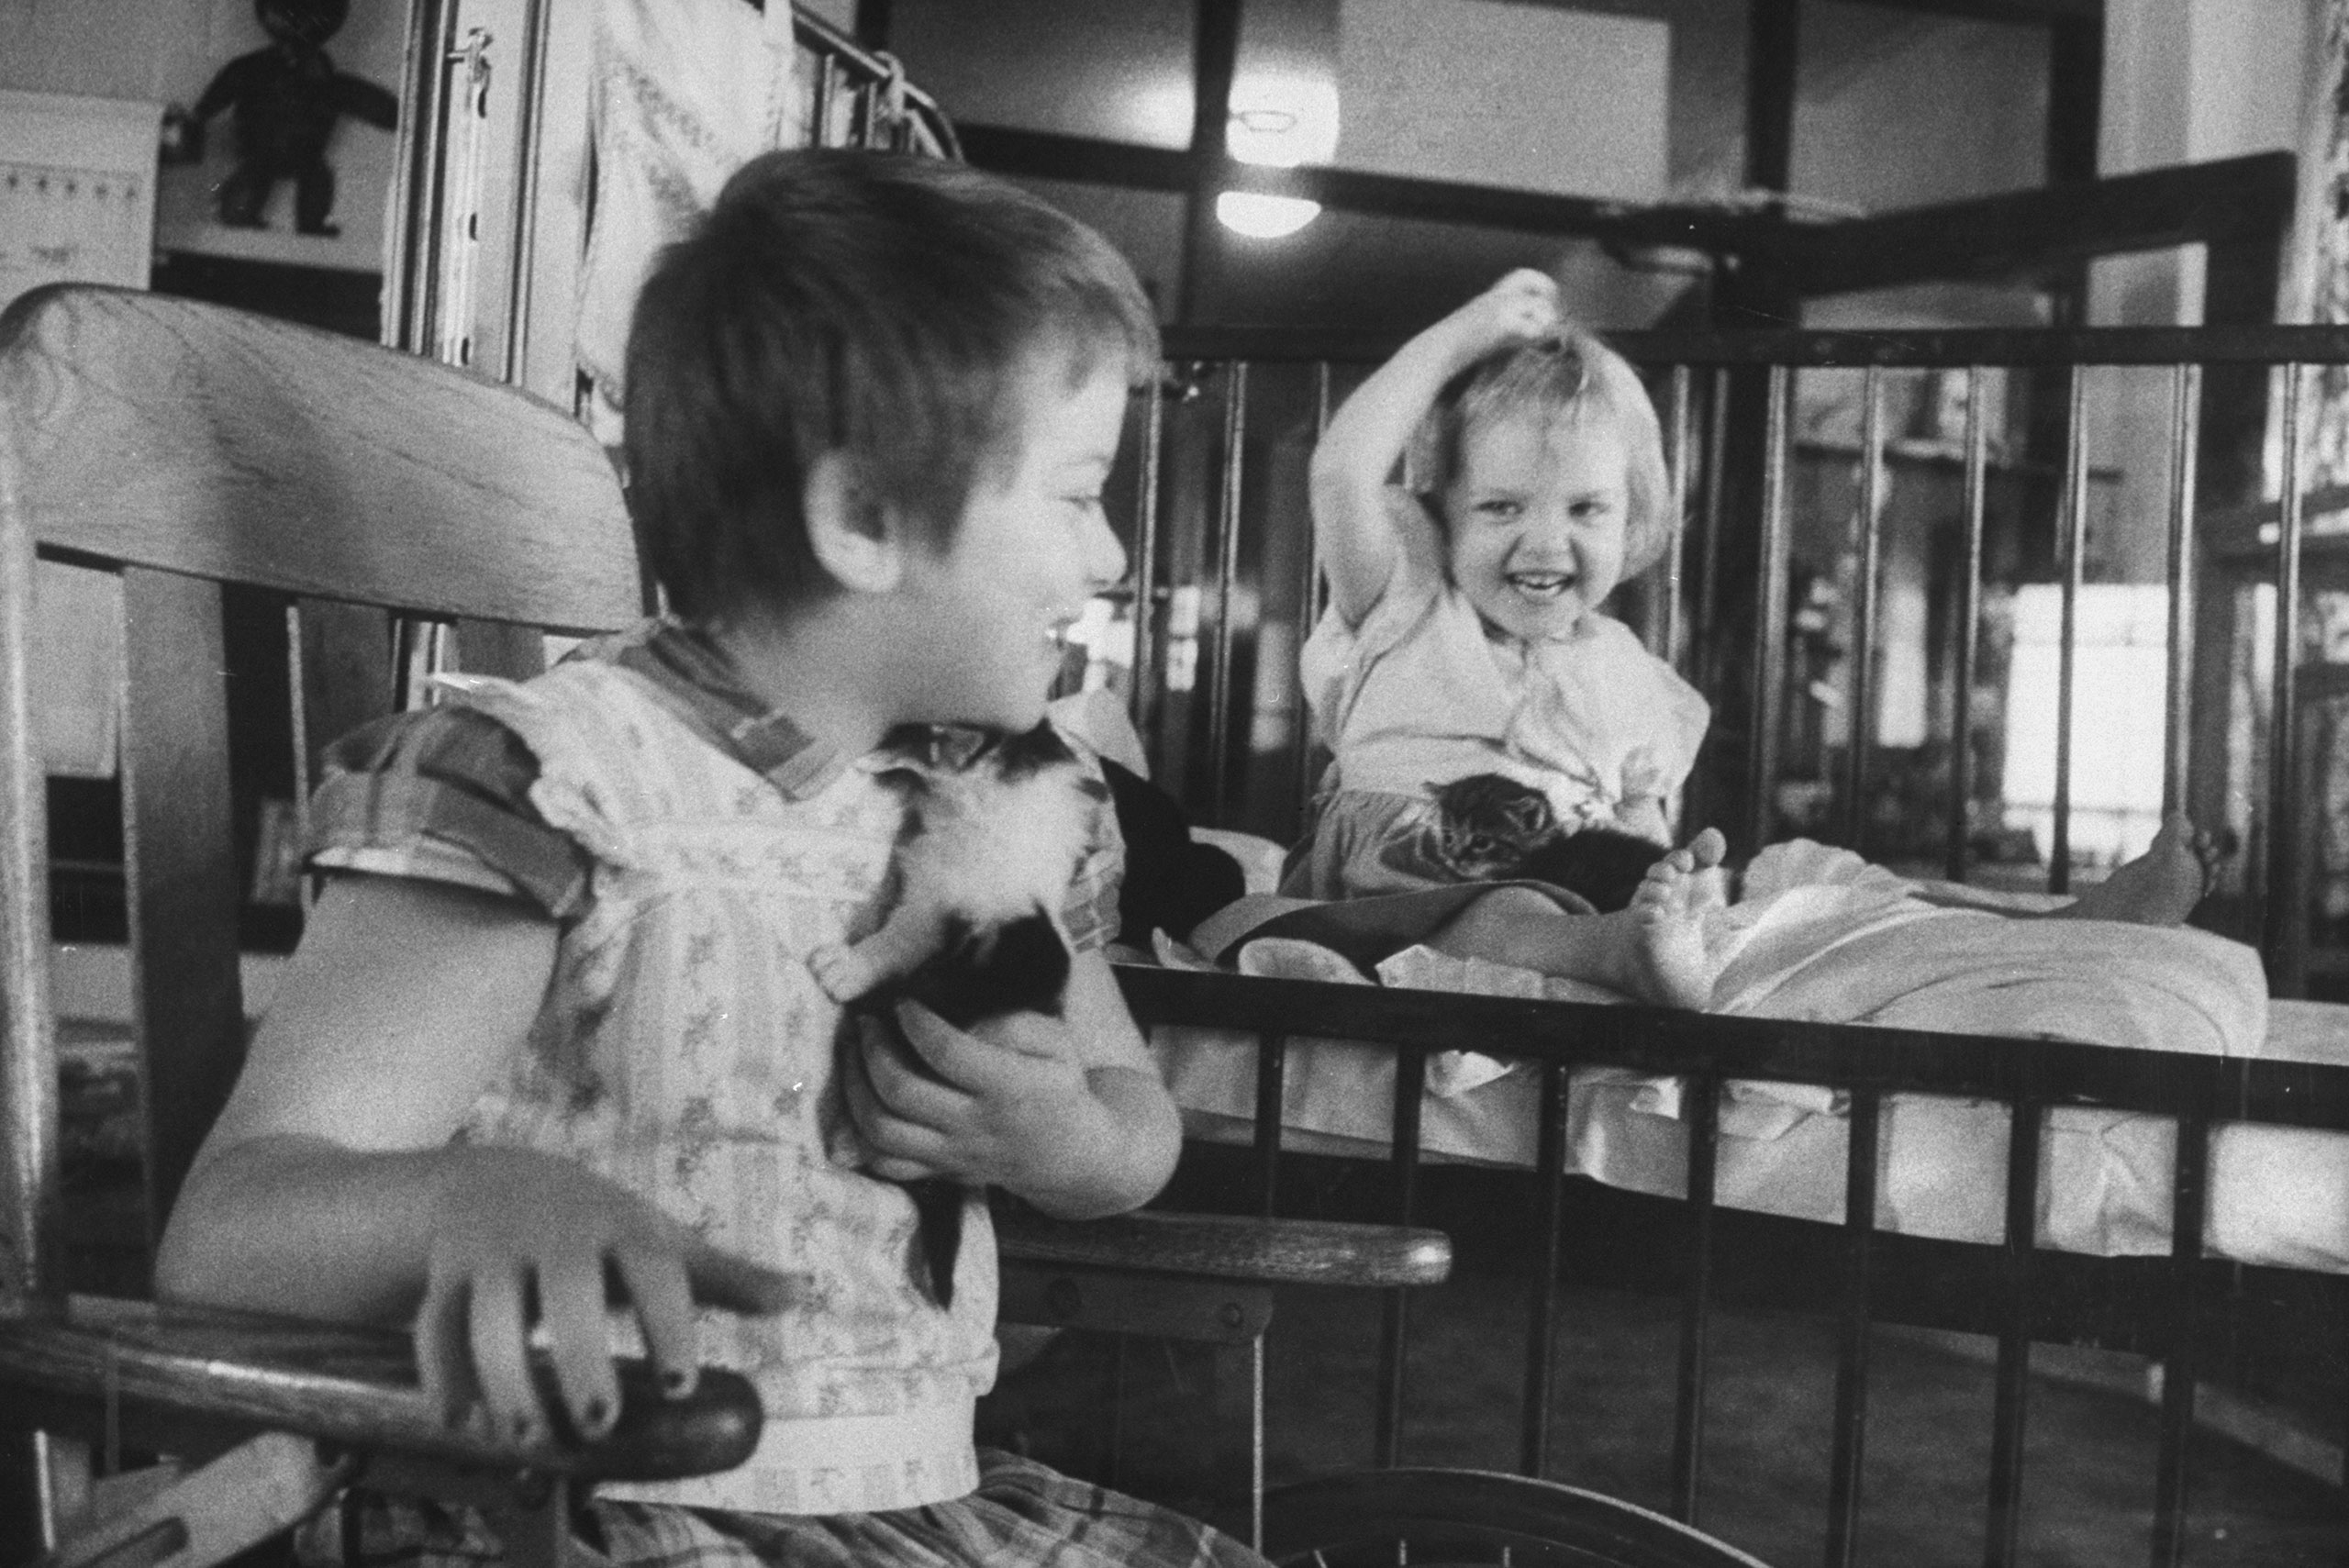 Two children play with kittens at the University of Michigan's hospital at Ann Arbor, 1956.